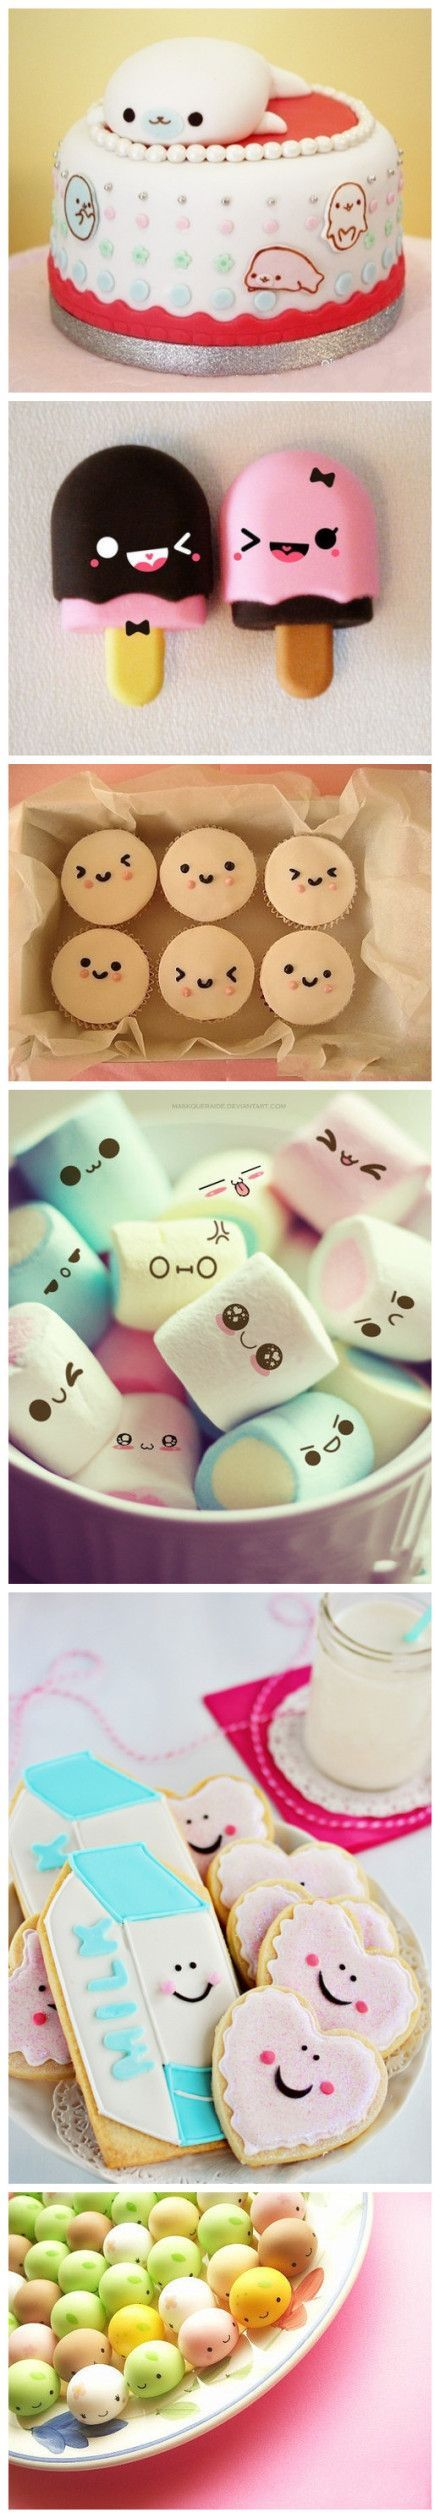 May be polymer clay but this could be done with real food. ~ kawaii faces